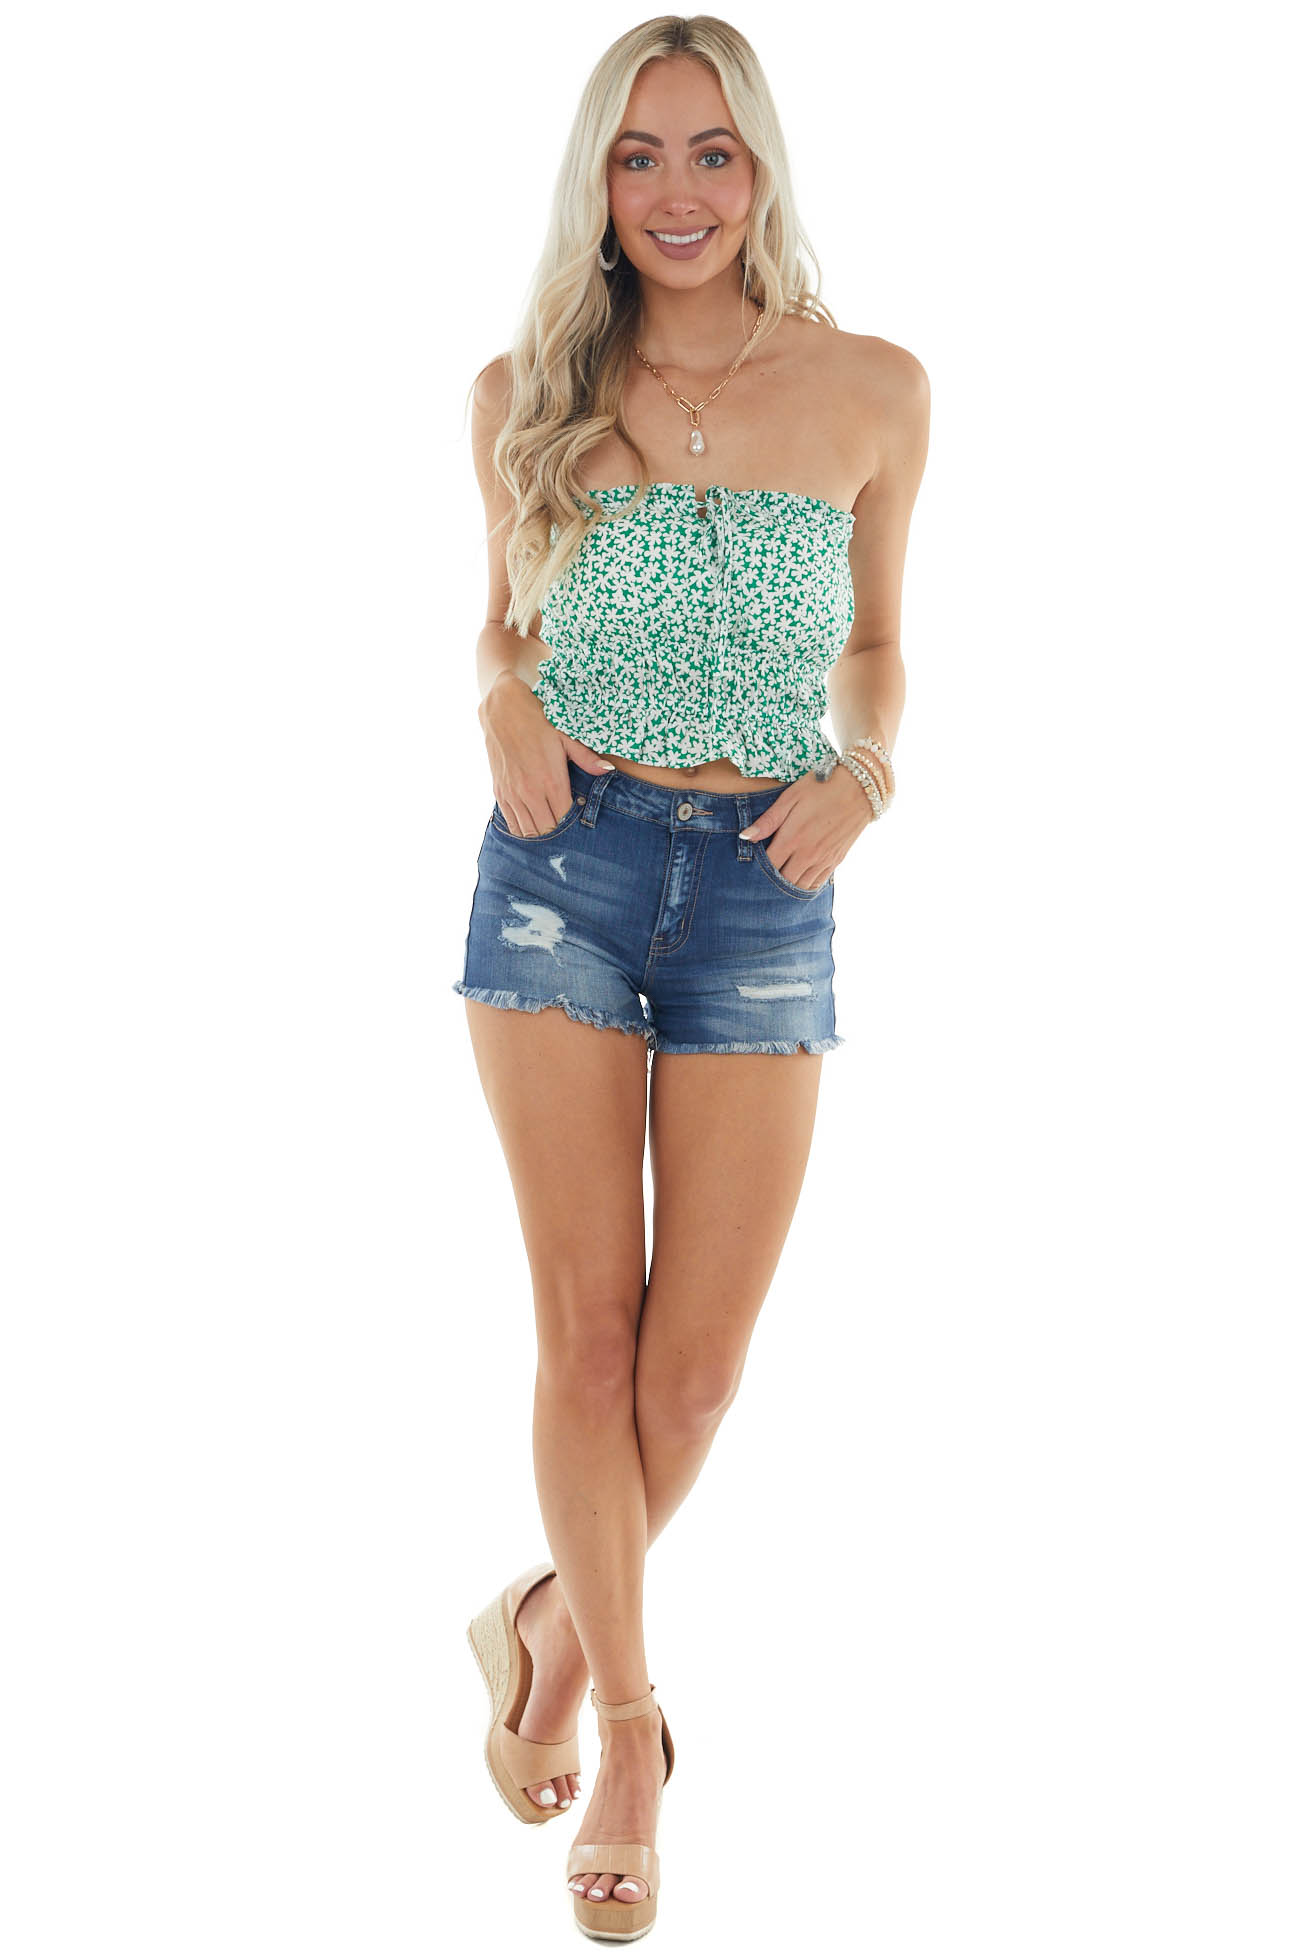 Jade Green Ditsy Floral Strapless Crop Top